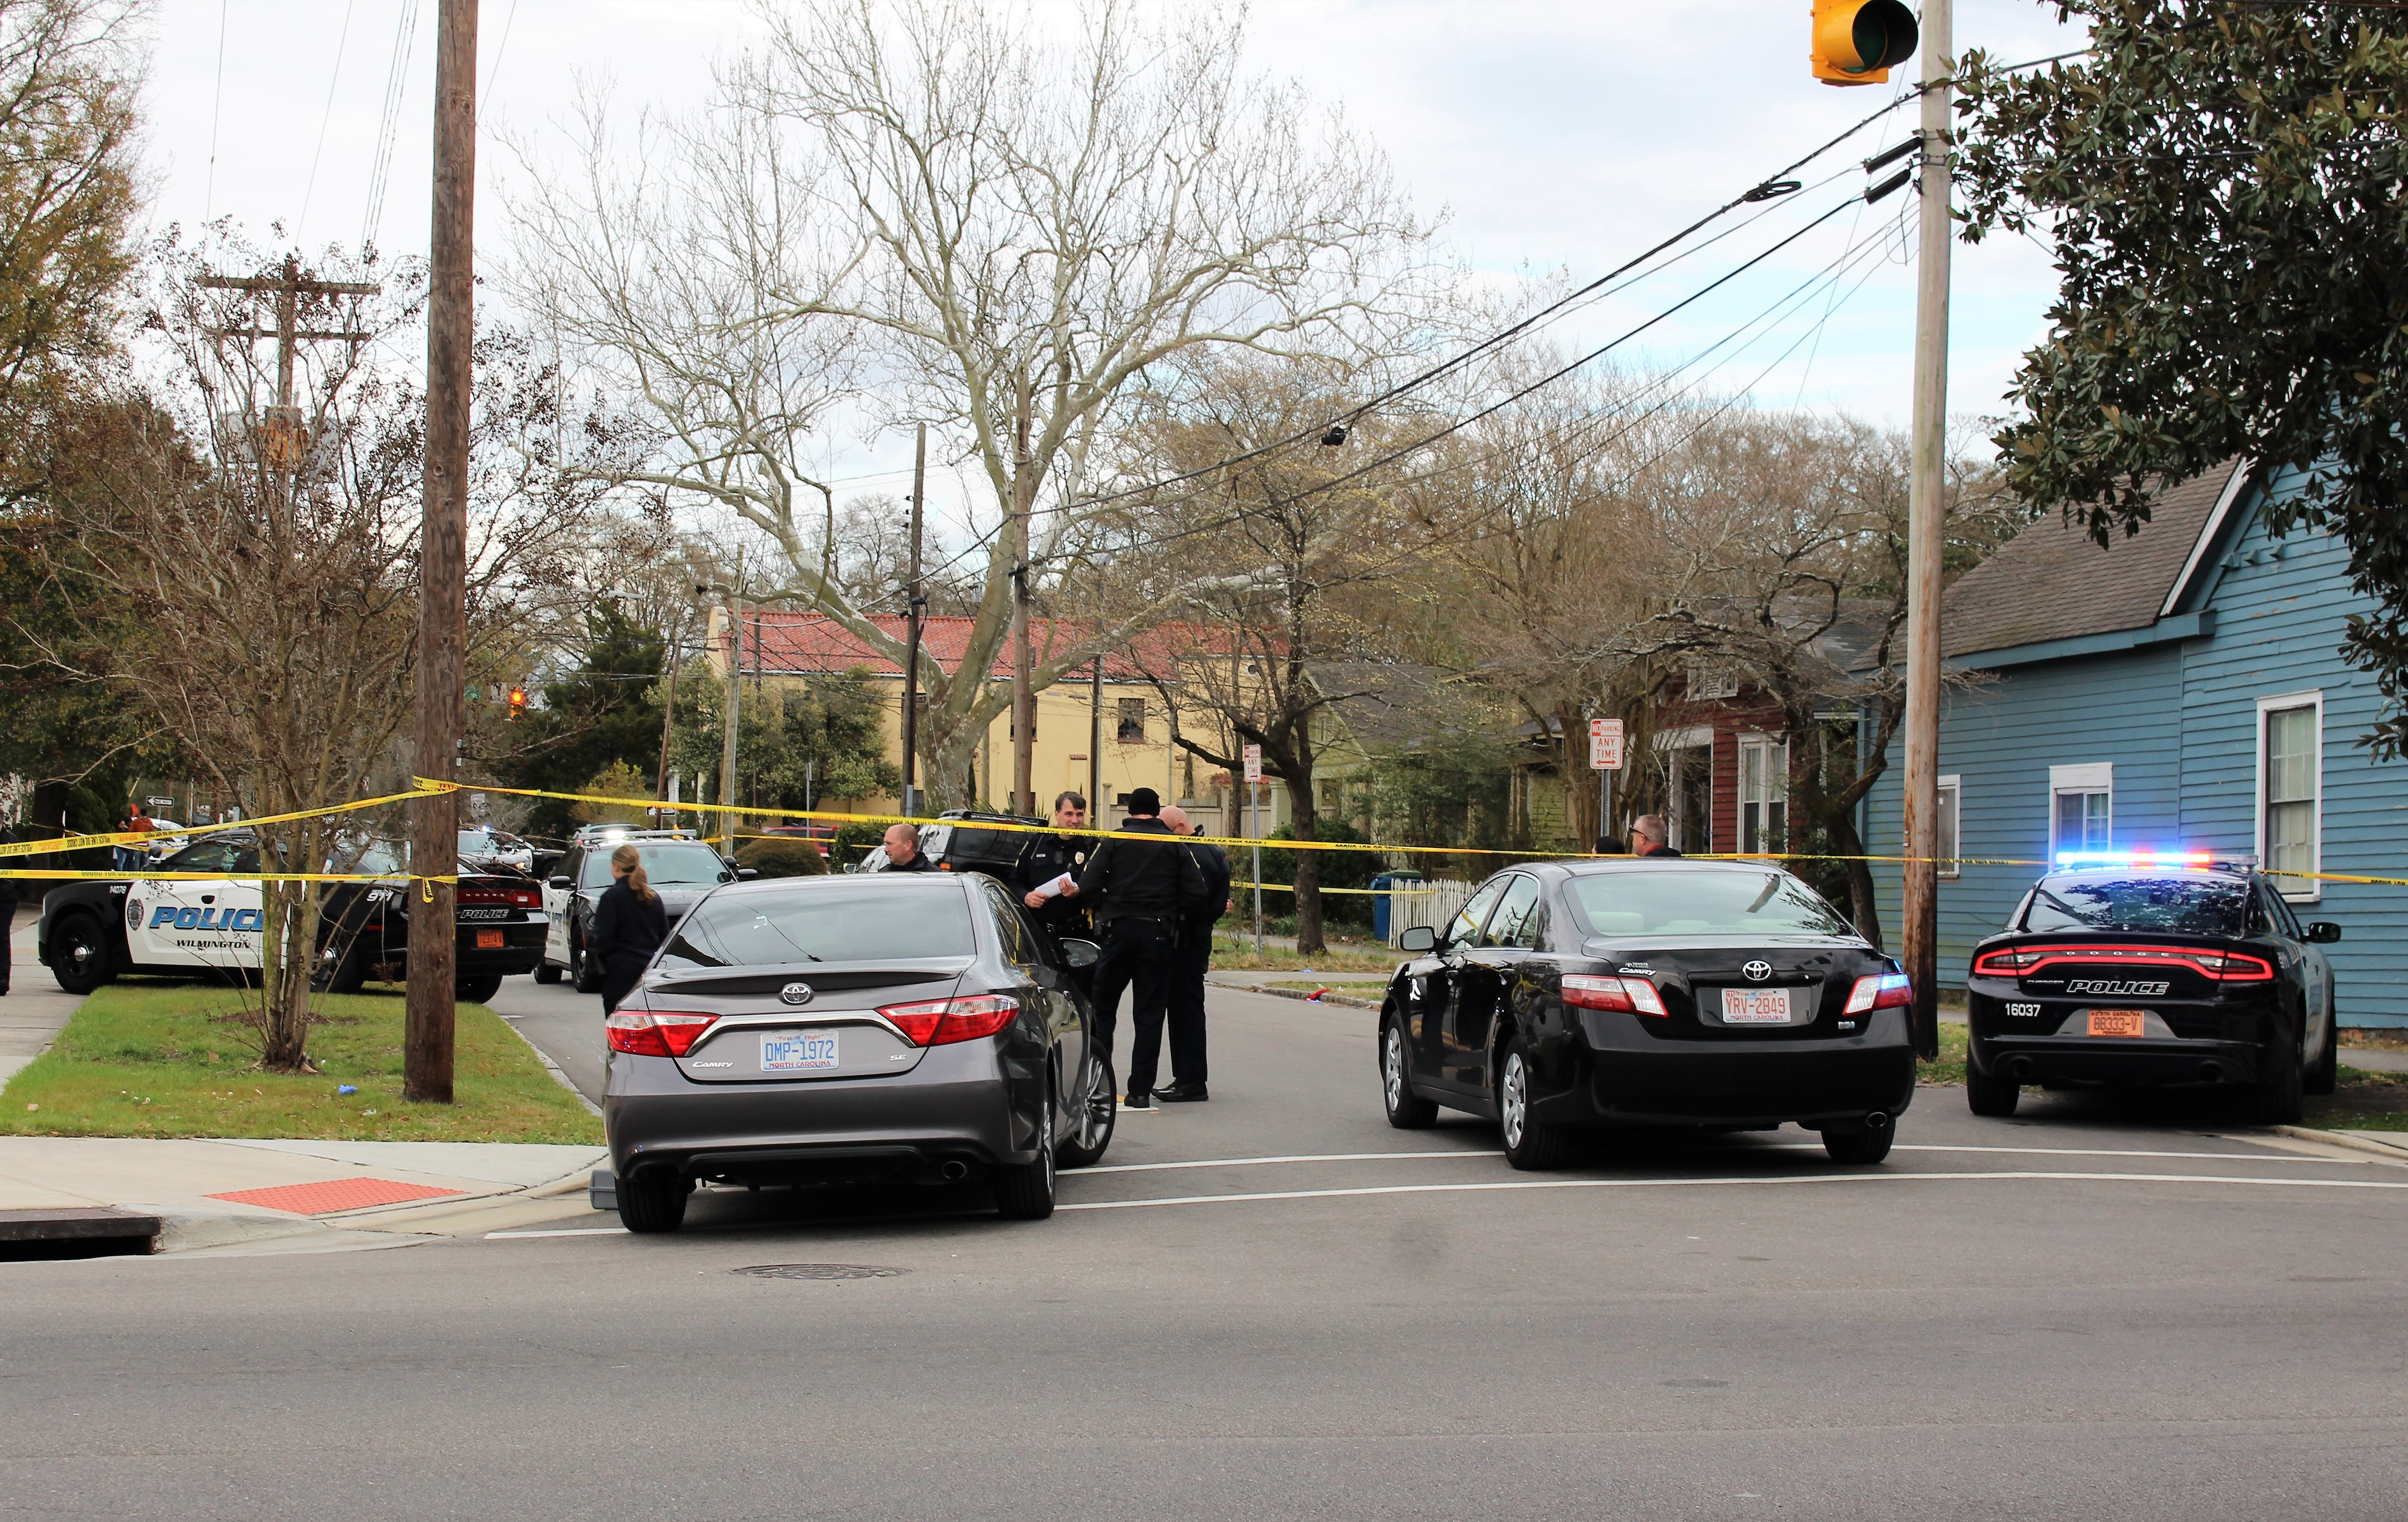 Wilmington police on the scene of a shooting that injured a woman in the area of Wrightsville Avenue and 16th Street. Photo by Christina Haley.